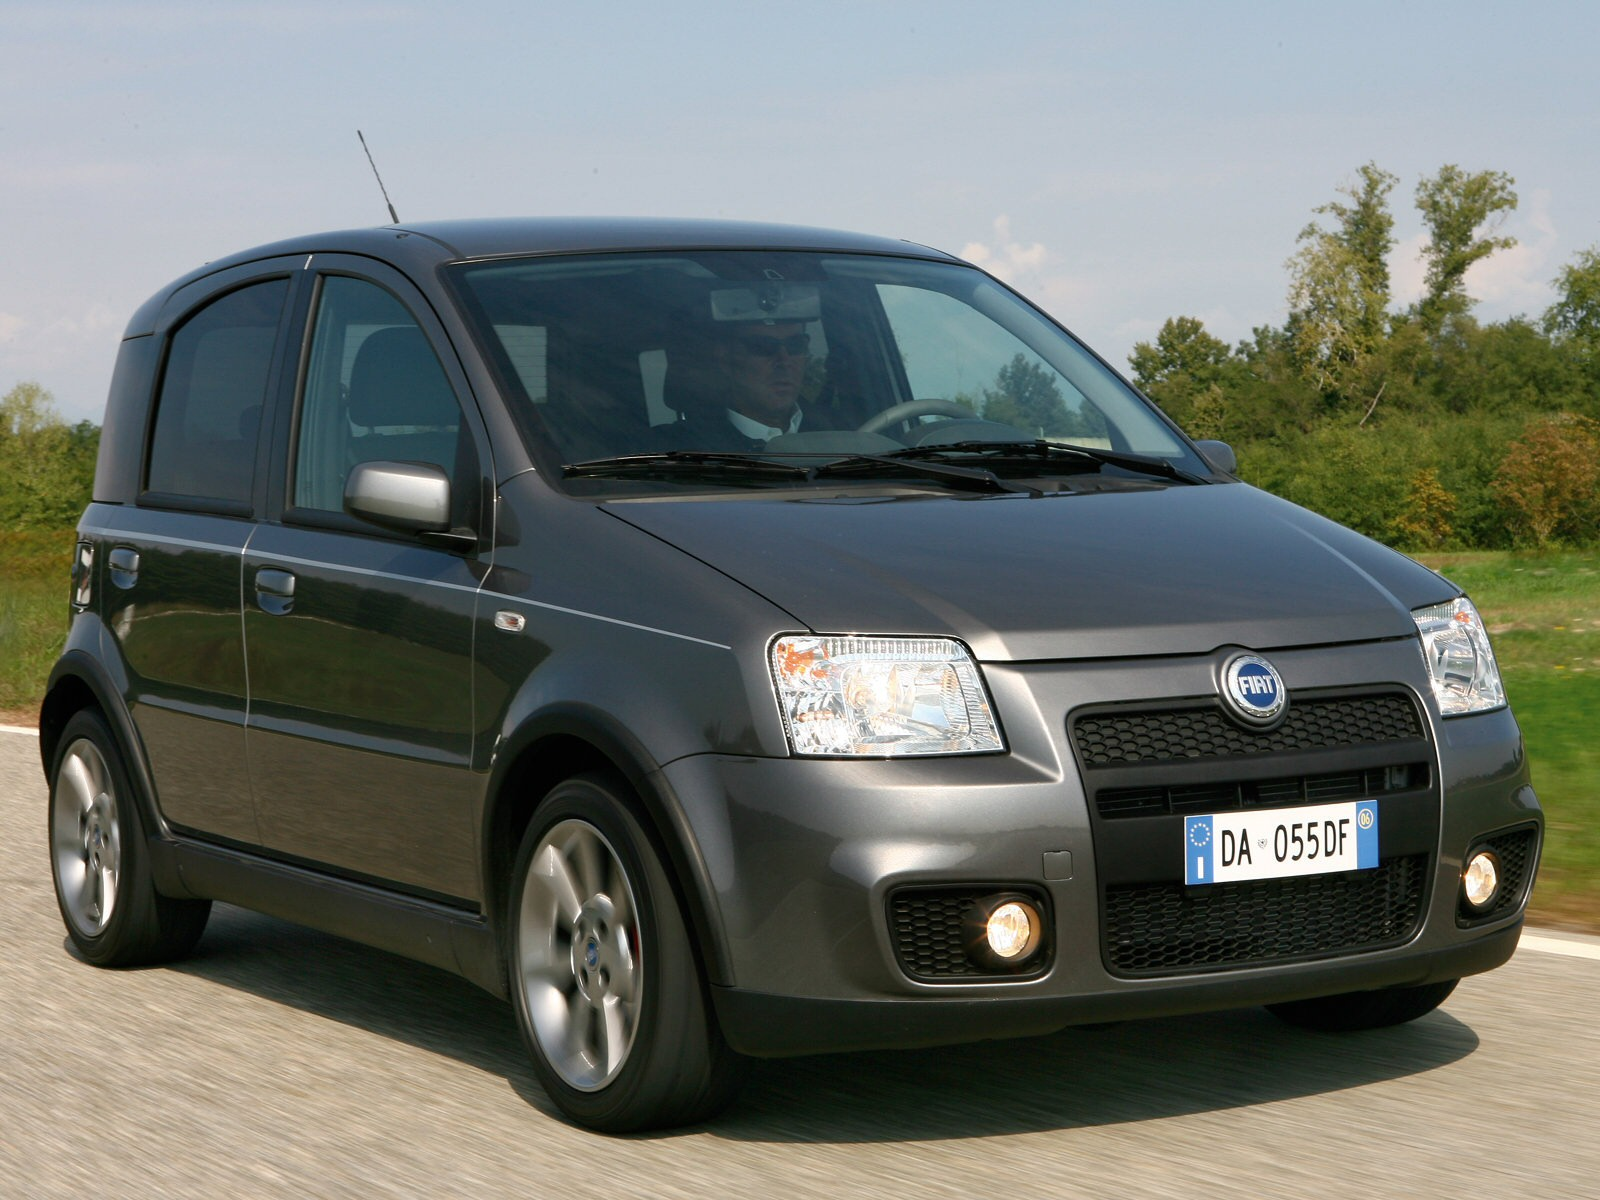 fiat panda 100hp 2007 fiat panda 100hp 2007 photo 13 car in pictures car photo gallery. Black Bedroom Furniture Sets. Home Design Ideas